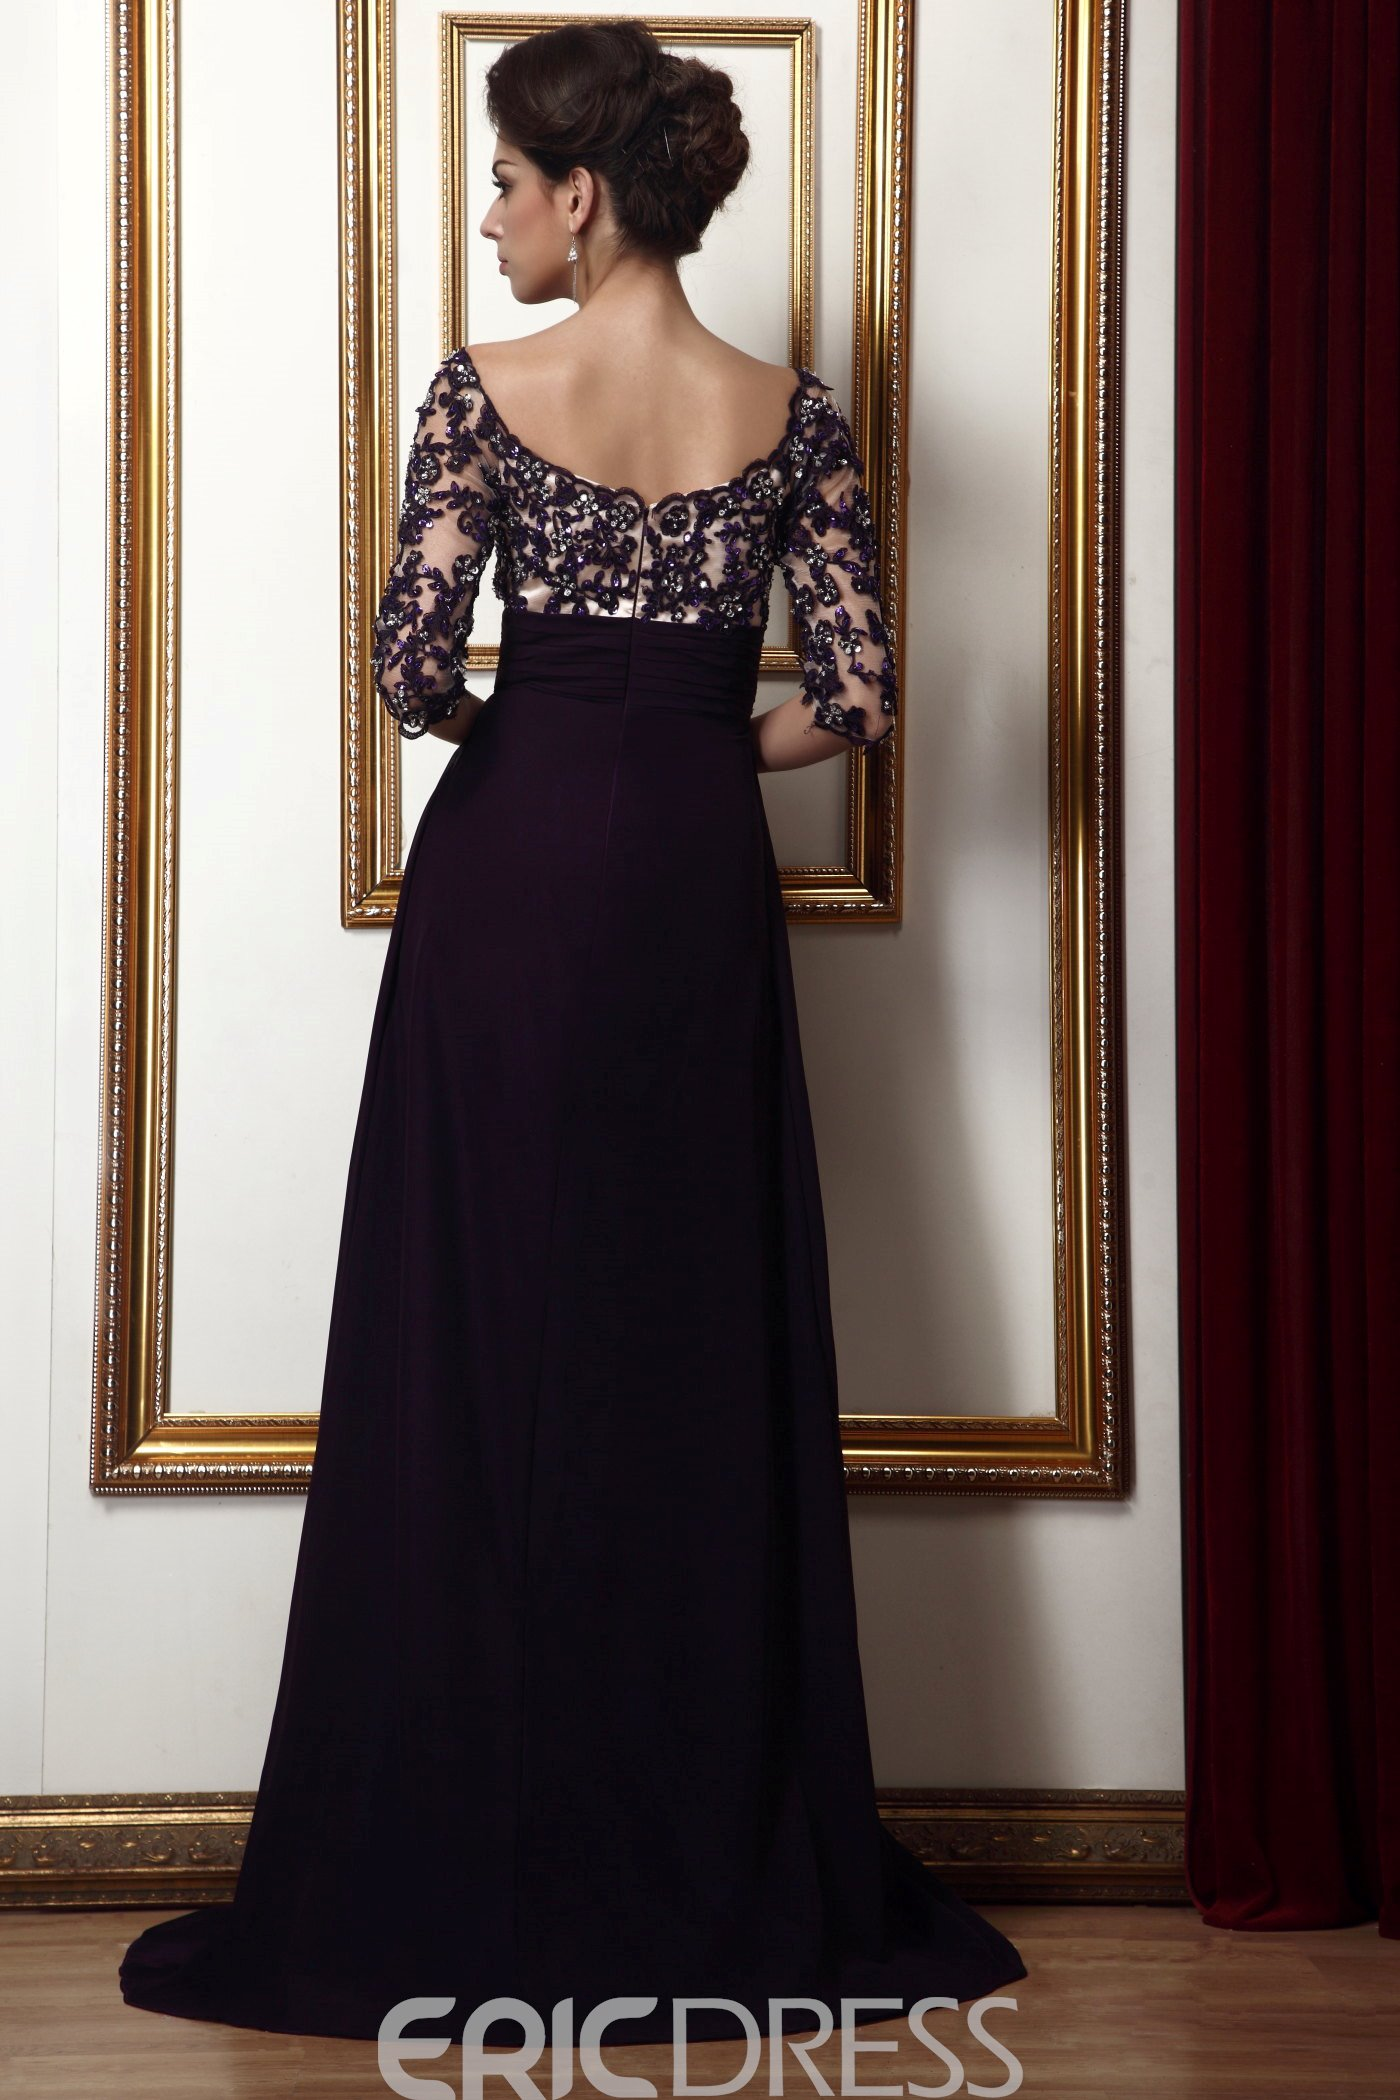 Ericdress Lace Empire Waist Off-the-Shoulder Long Taline's Mother of the Bride Dress